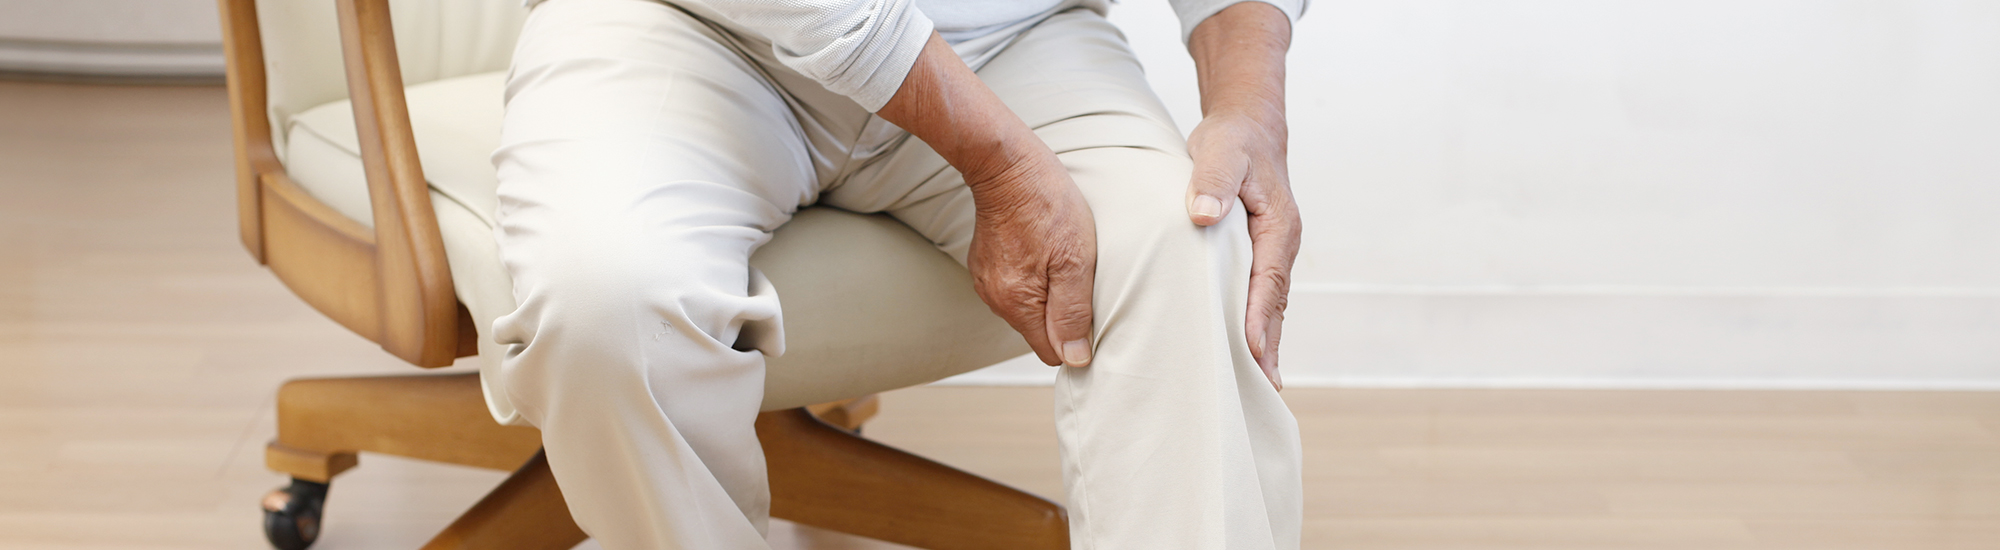 Ayurvedic treatment for Bursitis Causes